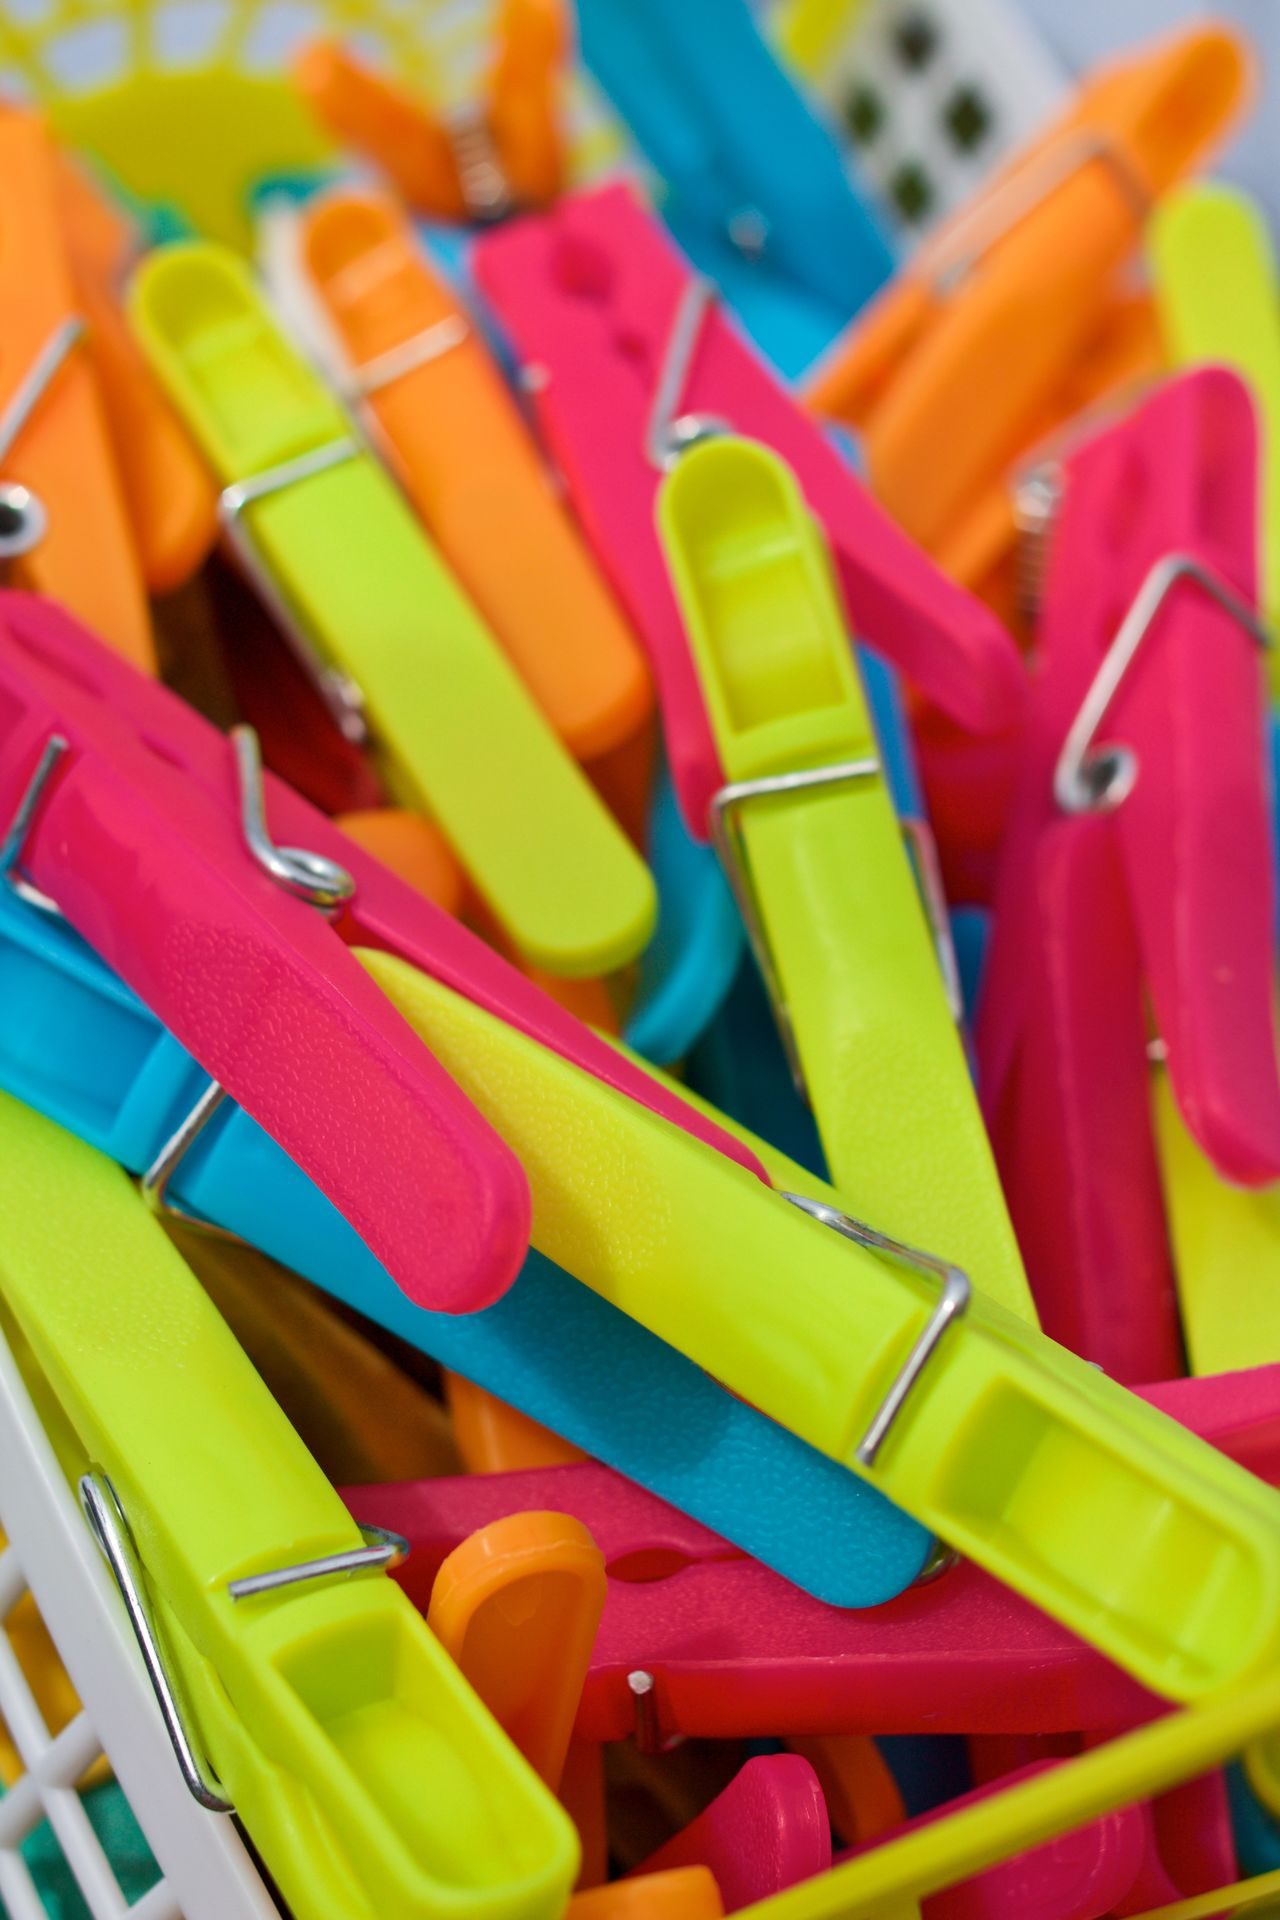 Backgrounds Blue Brightly Colouplastic Choice Close-up Clothesline Clothespeg Clothespin Day Green Multi Colored No People Outdoors Pegs Plastic Plastic Pegs Purple Red Washing